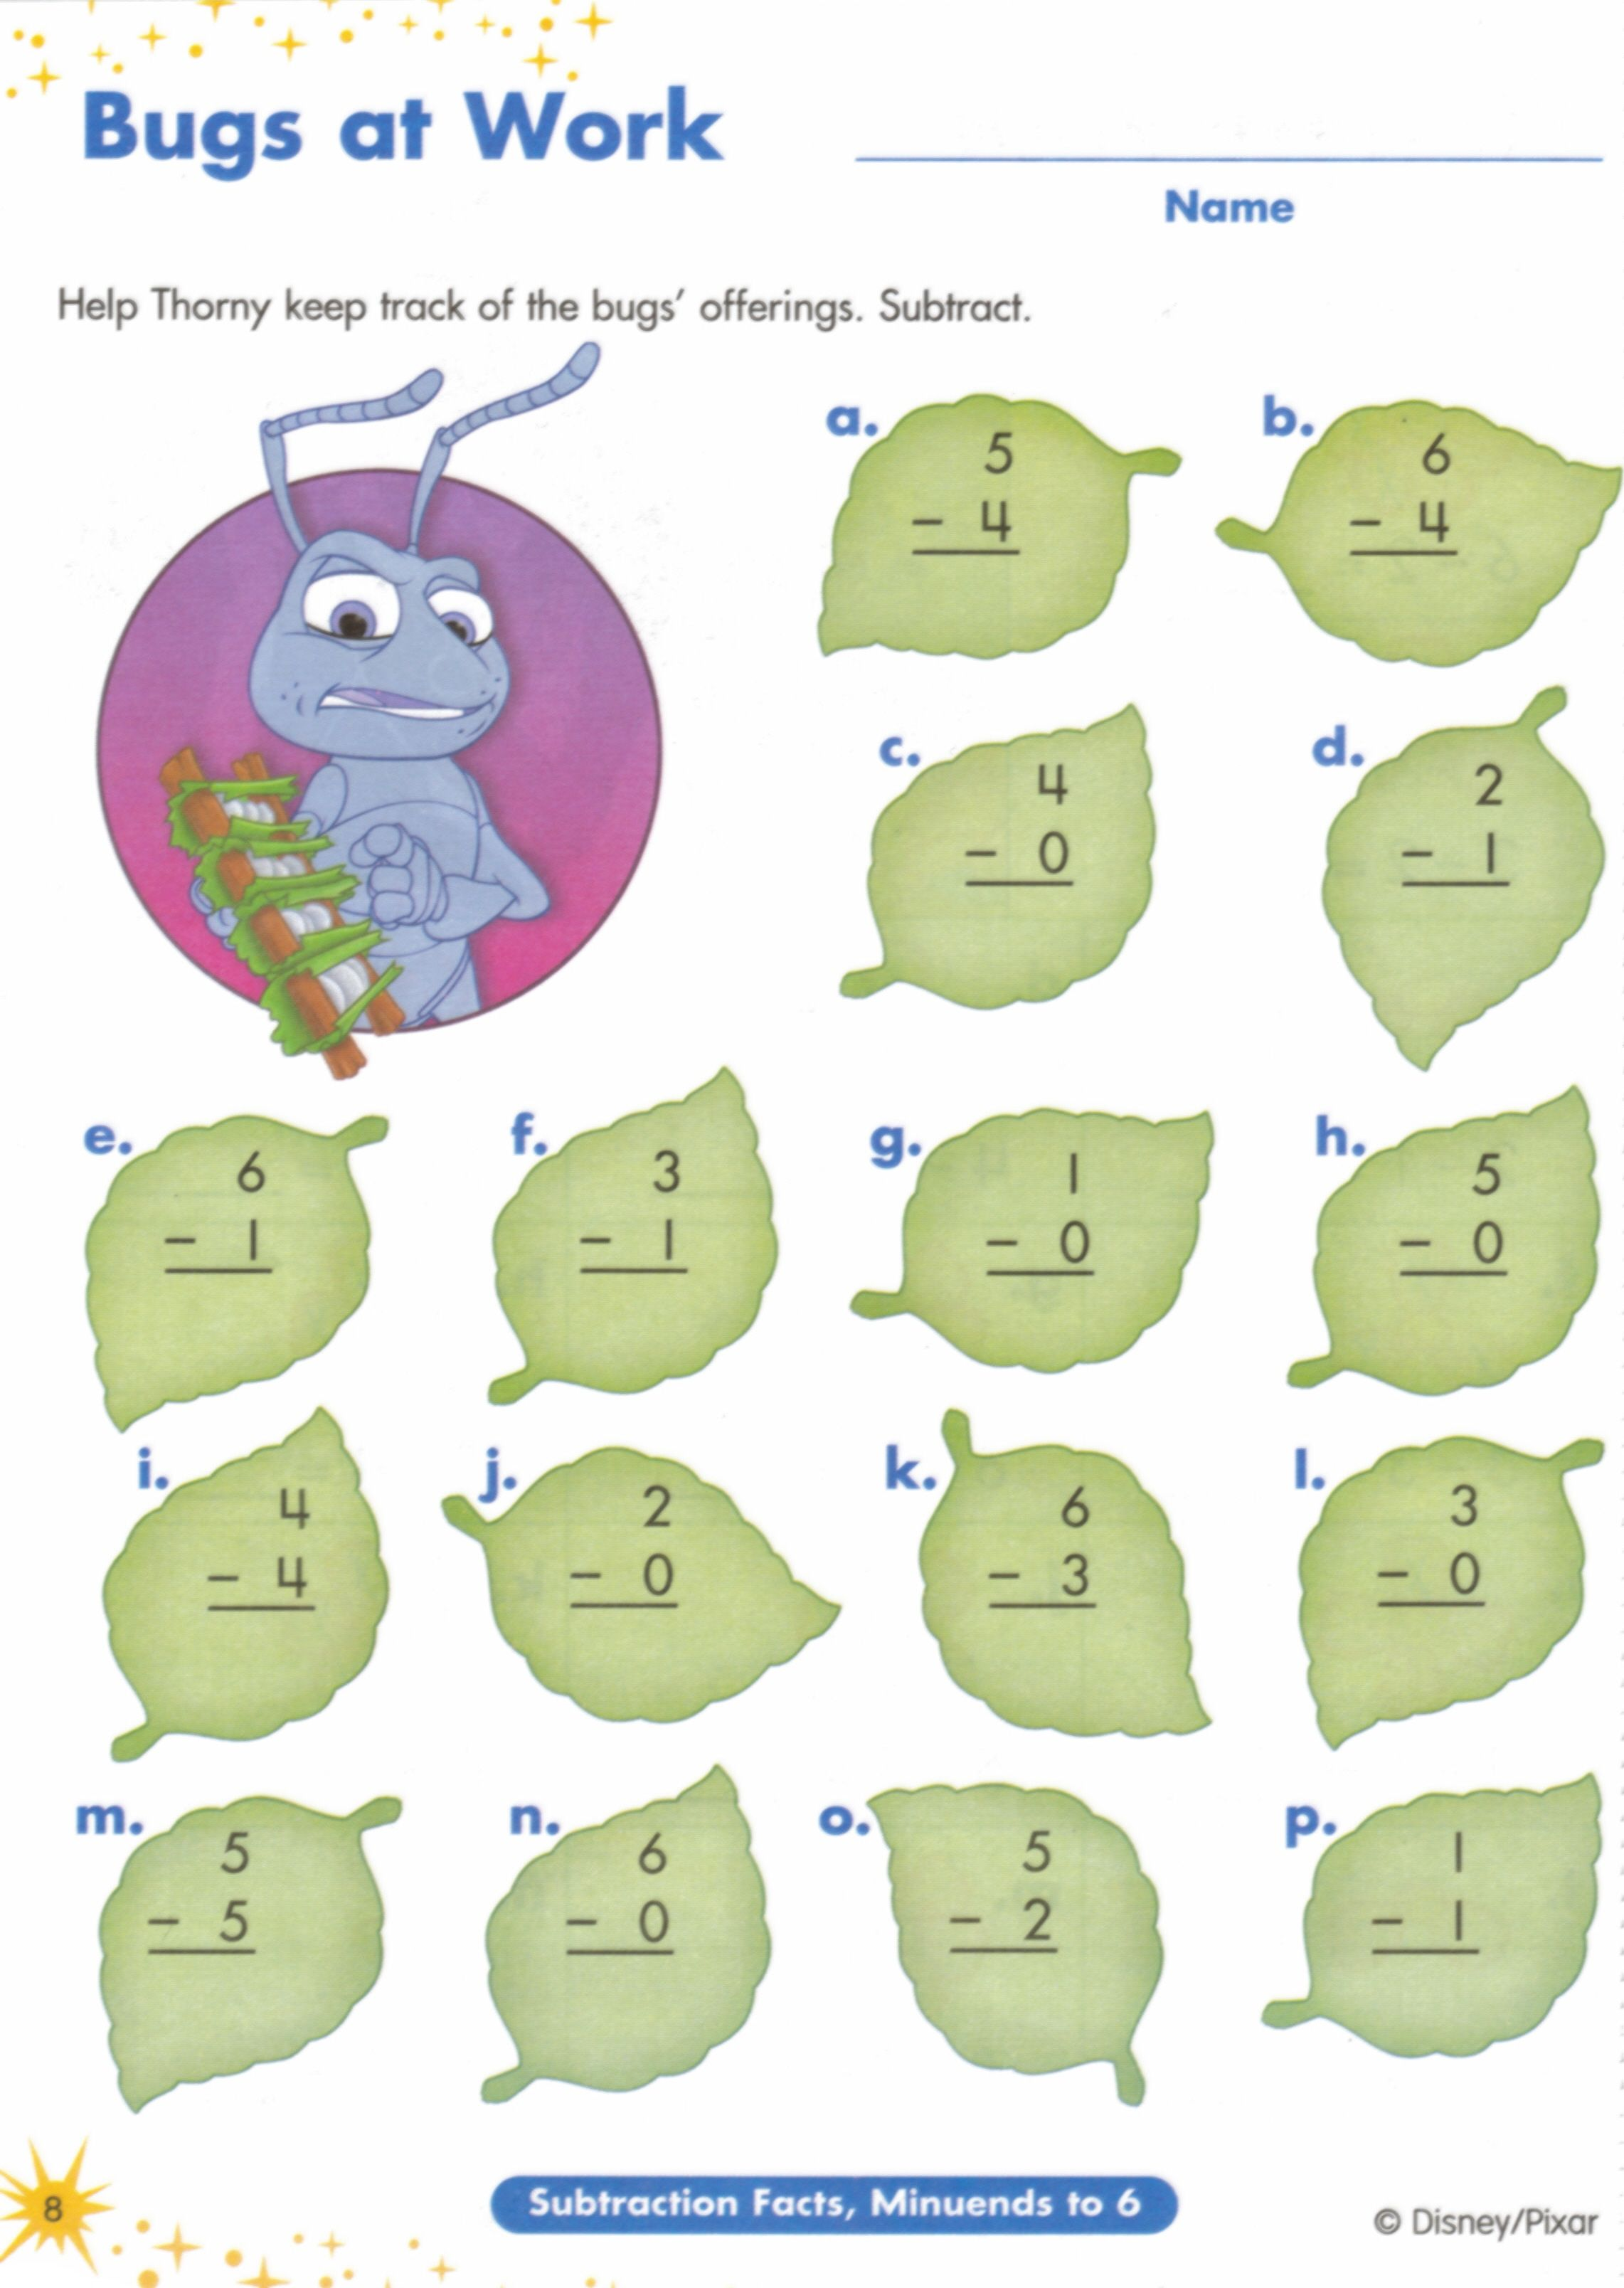 Weirdmailus  Nice  Images About Worksheets On Pinterest  Fun Facts For Kids  With Great  Images About Worksheets On Pinterest  Fun Facts For Kids Earth Day Worksheets And Jungles With Attractive Energy Calculations Worksheet Also Math Worksheets Fractions In Addition Drawing Free Body Diagrams Worksheet Answers And Alien Periodic Table Worksheet Answers As Well As Graphing Using Intercepts Worksheet Additionally Finding Common Denominators Worksheets From Pinterestcom With Weirdmailus  Great  Images About Worksheets On Pinterest  Fun Facts For Kids  With Attractive  Images About Worksheets On Pinterest  Fun Facts For Kids Earth Day Worksheets And Jungles And Nice Energy Calculations Worksheet Also Math Worksheets Fractions In Addition Drawing Free Body Diagrams Worksheet Answers From Pinterestcom